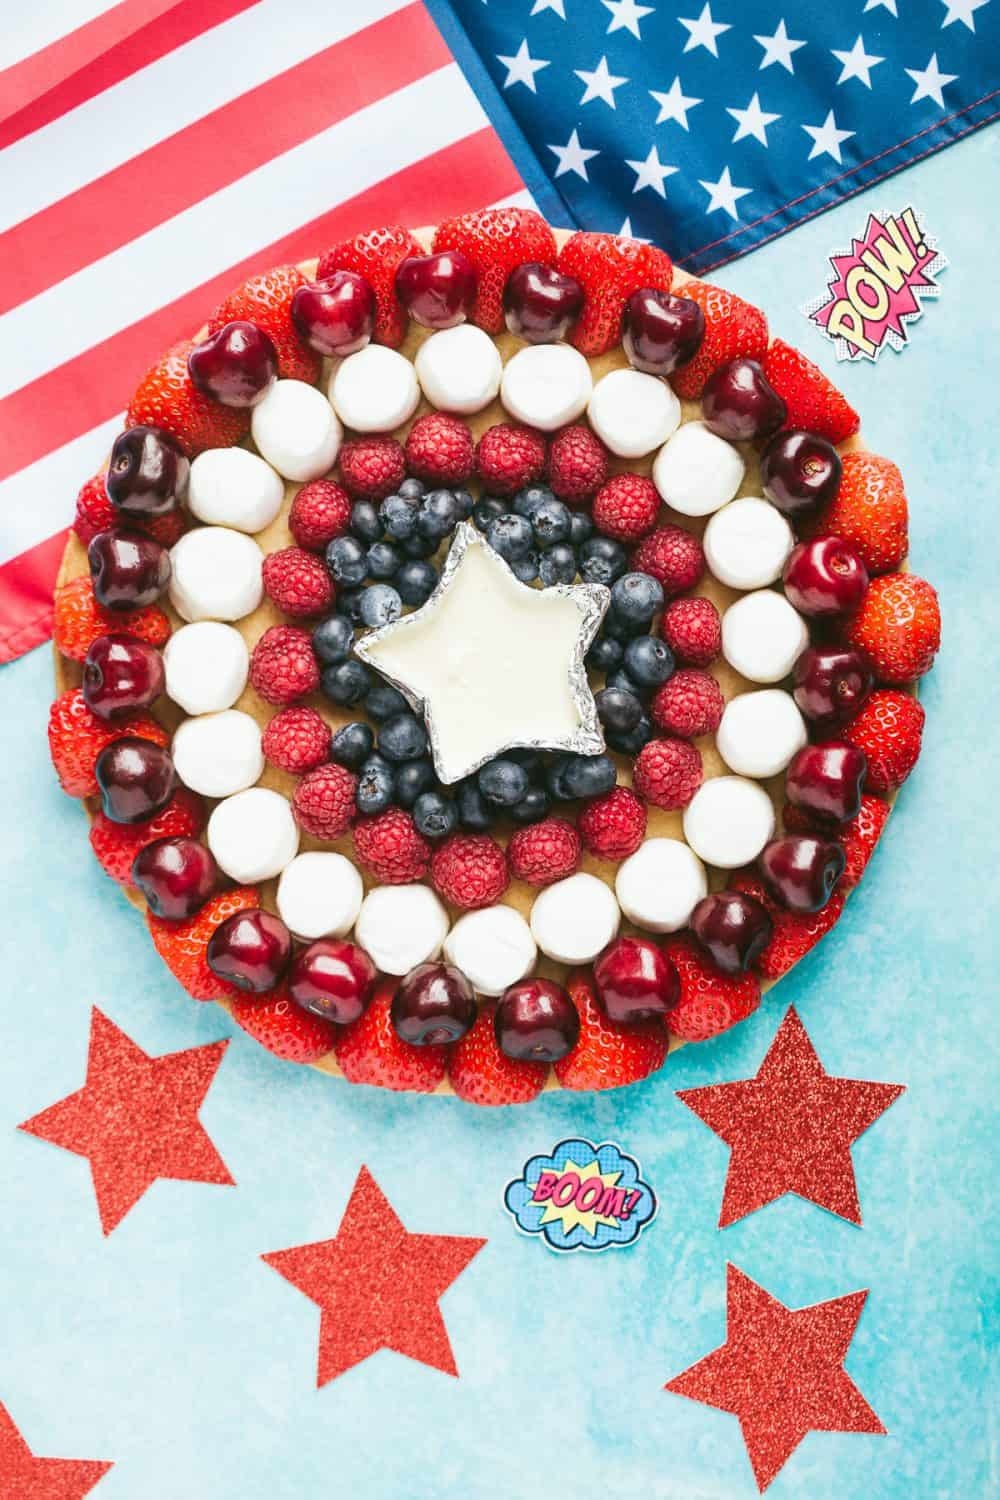 A fruit platter in the shape of Captain America's shield.